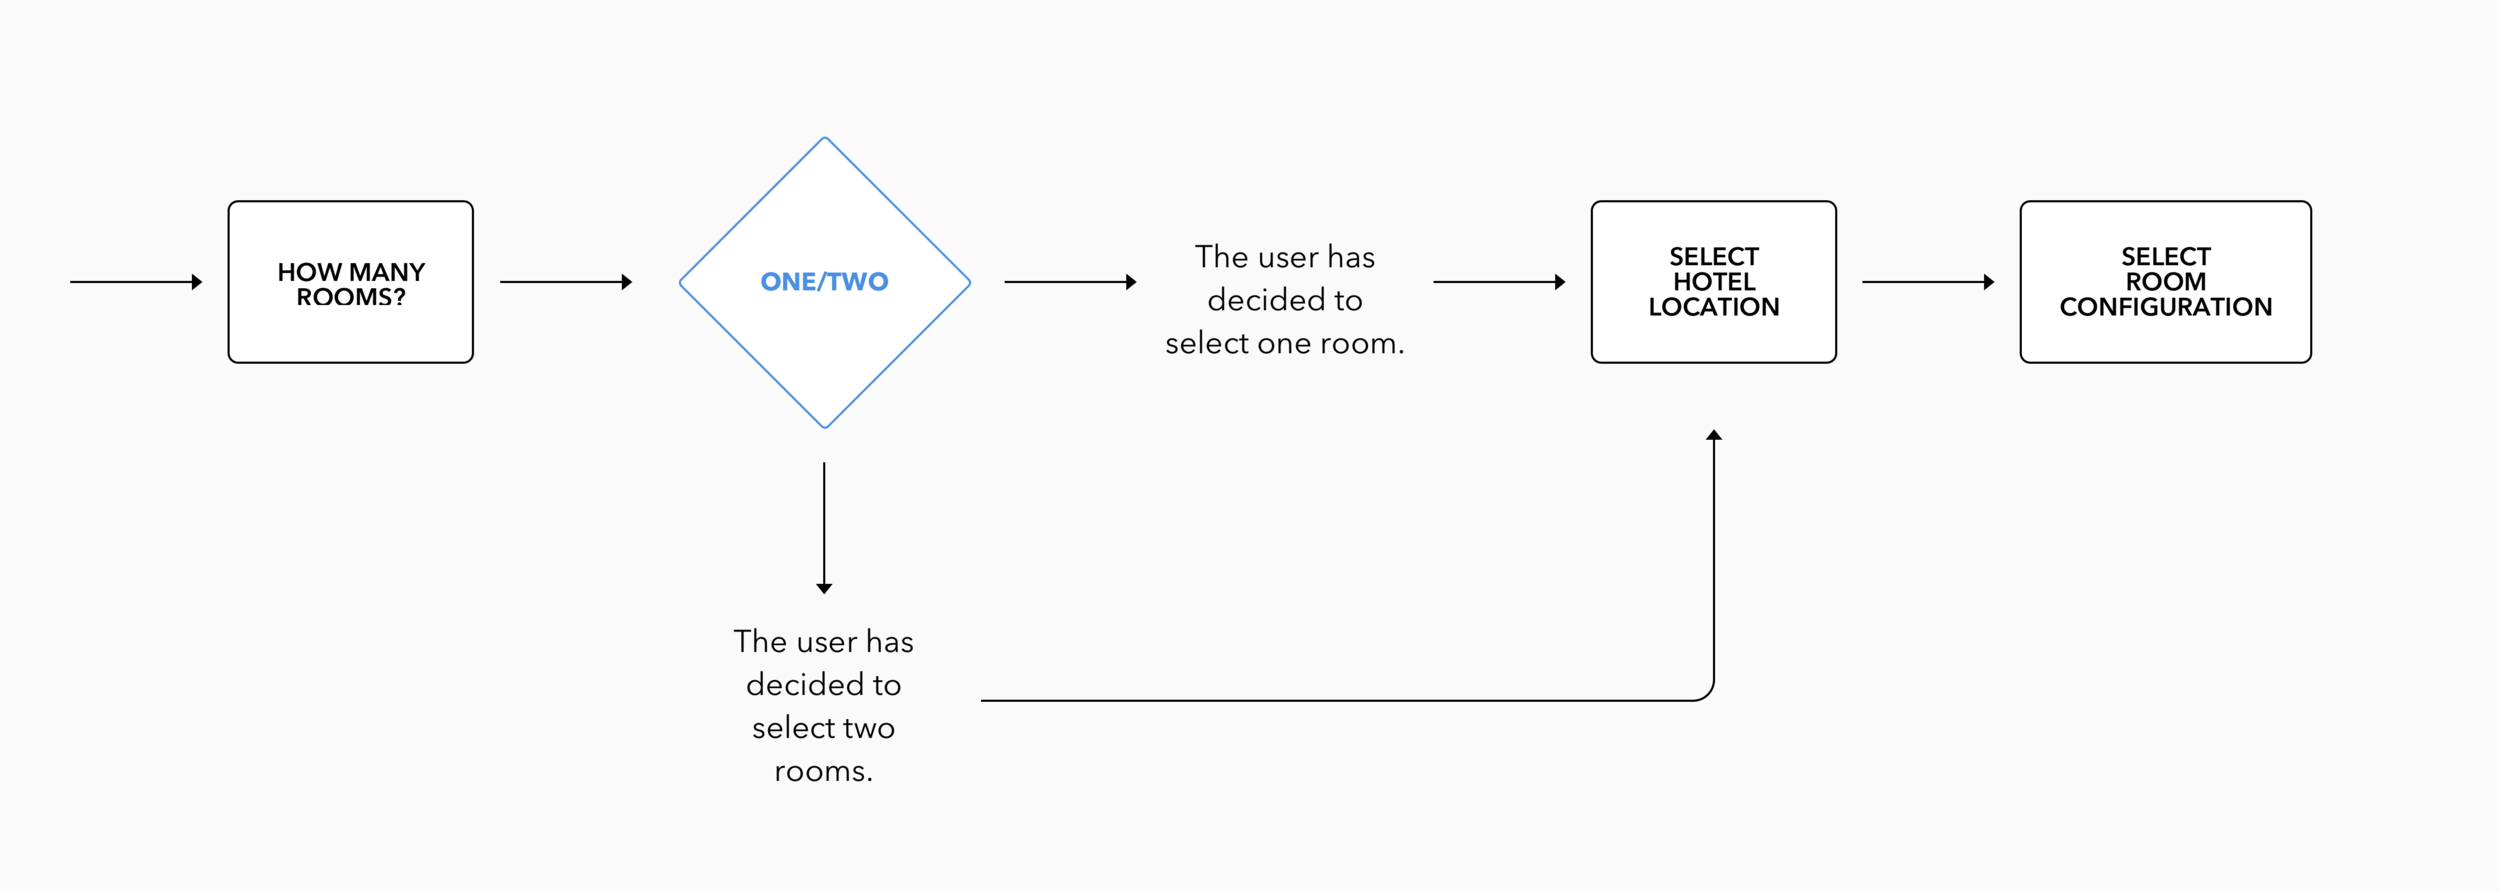 User Flow 2: During the second phase of the flow, users select how many rooms they wish to book, select a particular location, and configure their room layout.